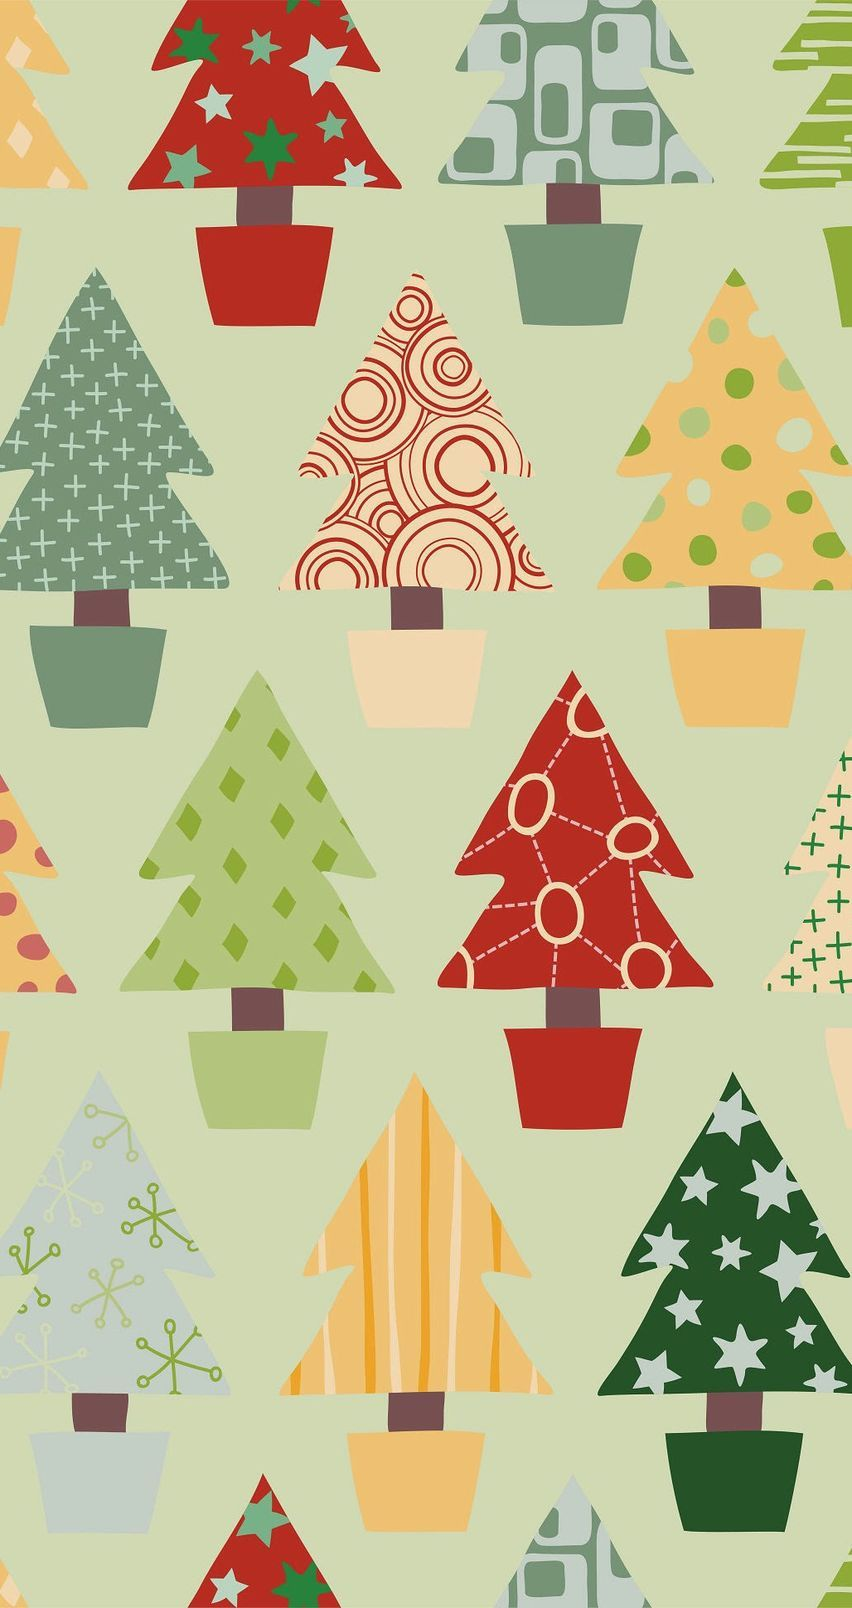 christmas tree patterns  tap image for more iphone 6